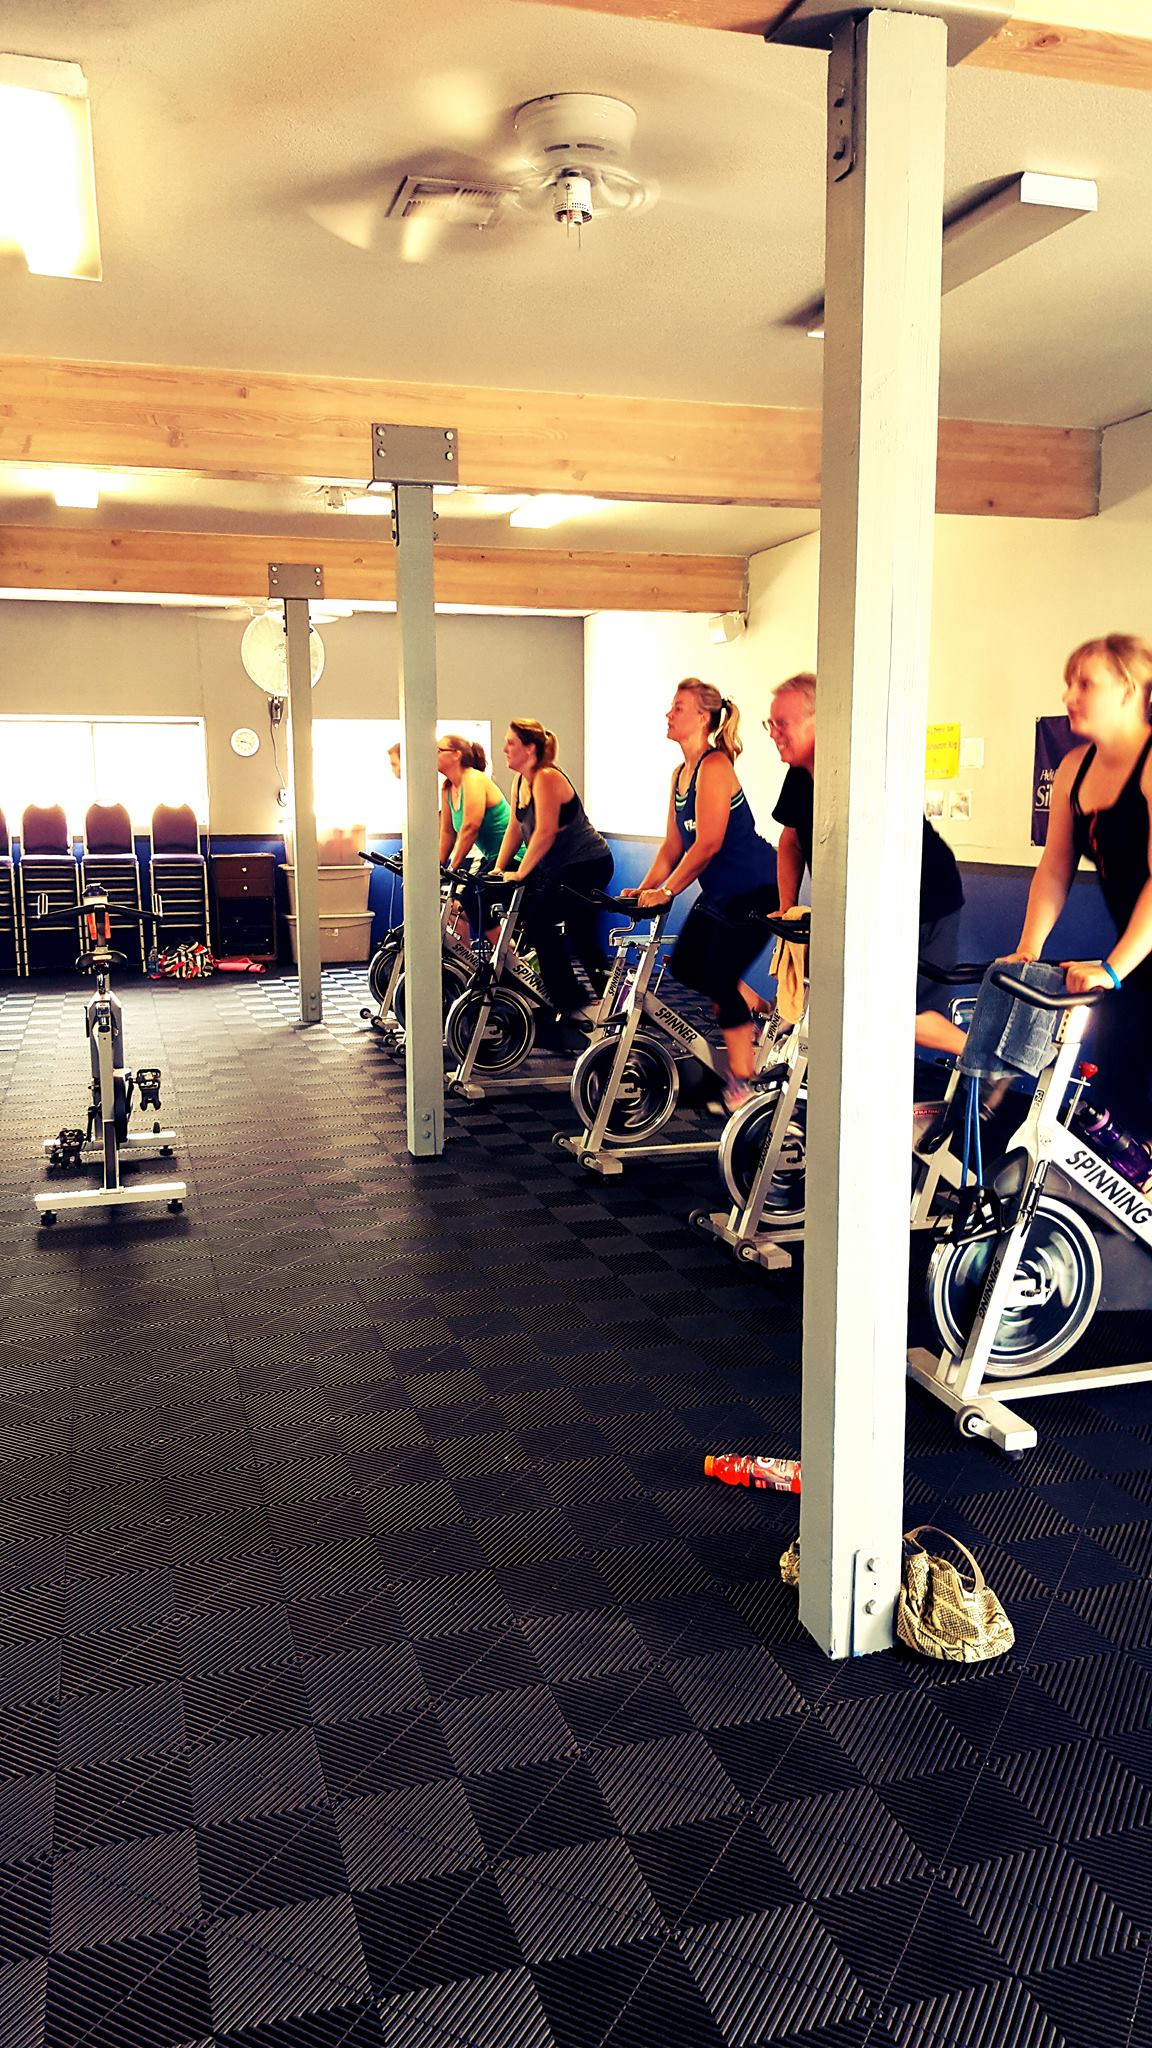 Gym With Stationary Bikes - Ribtrax